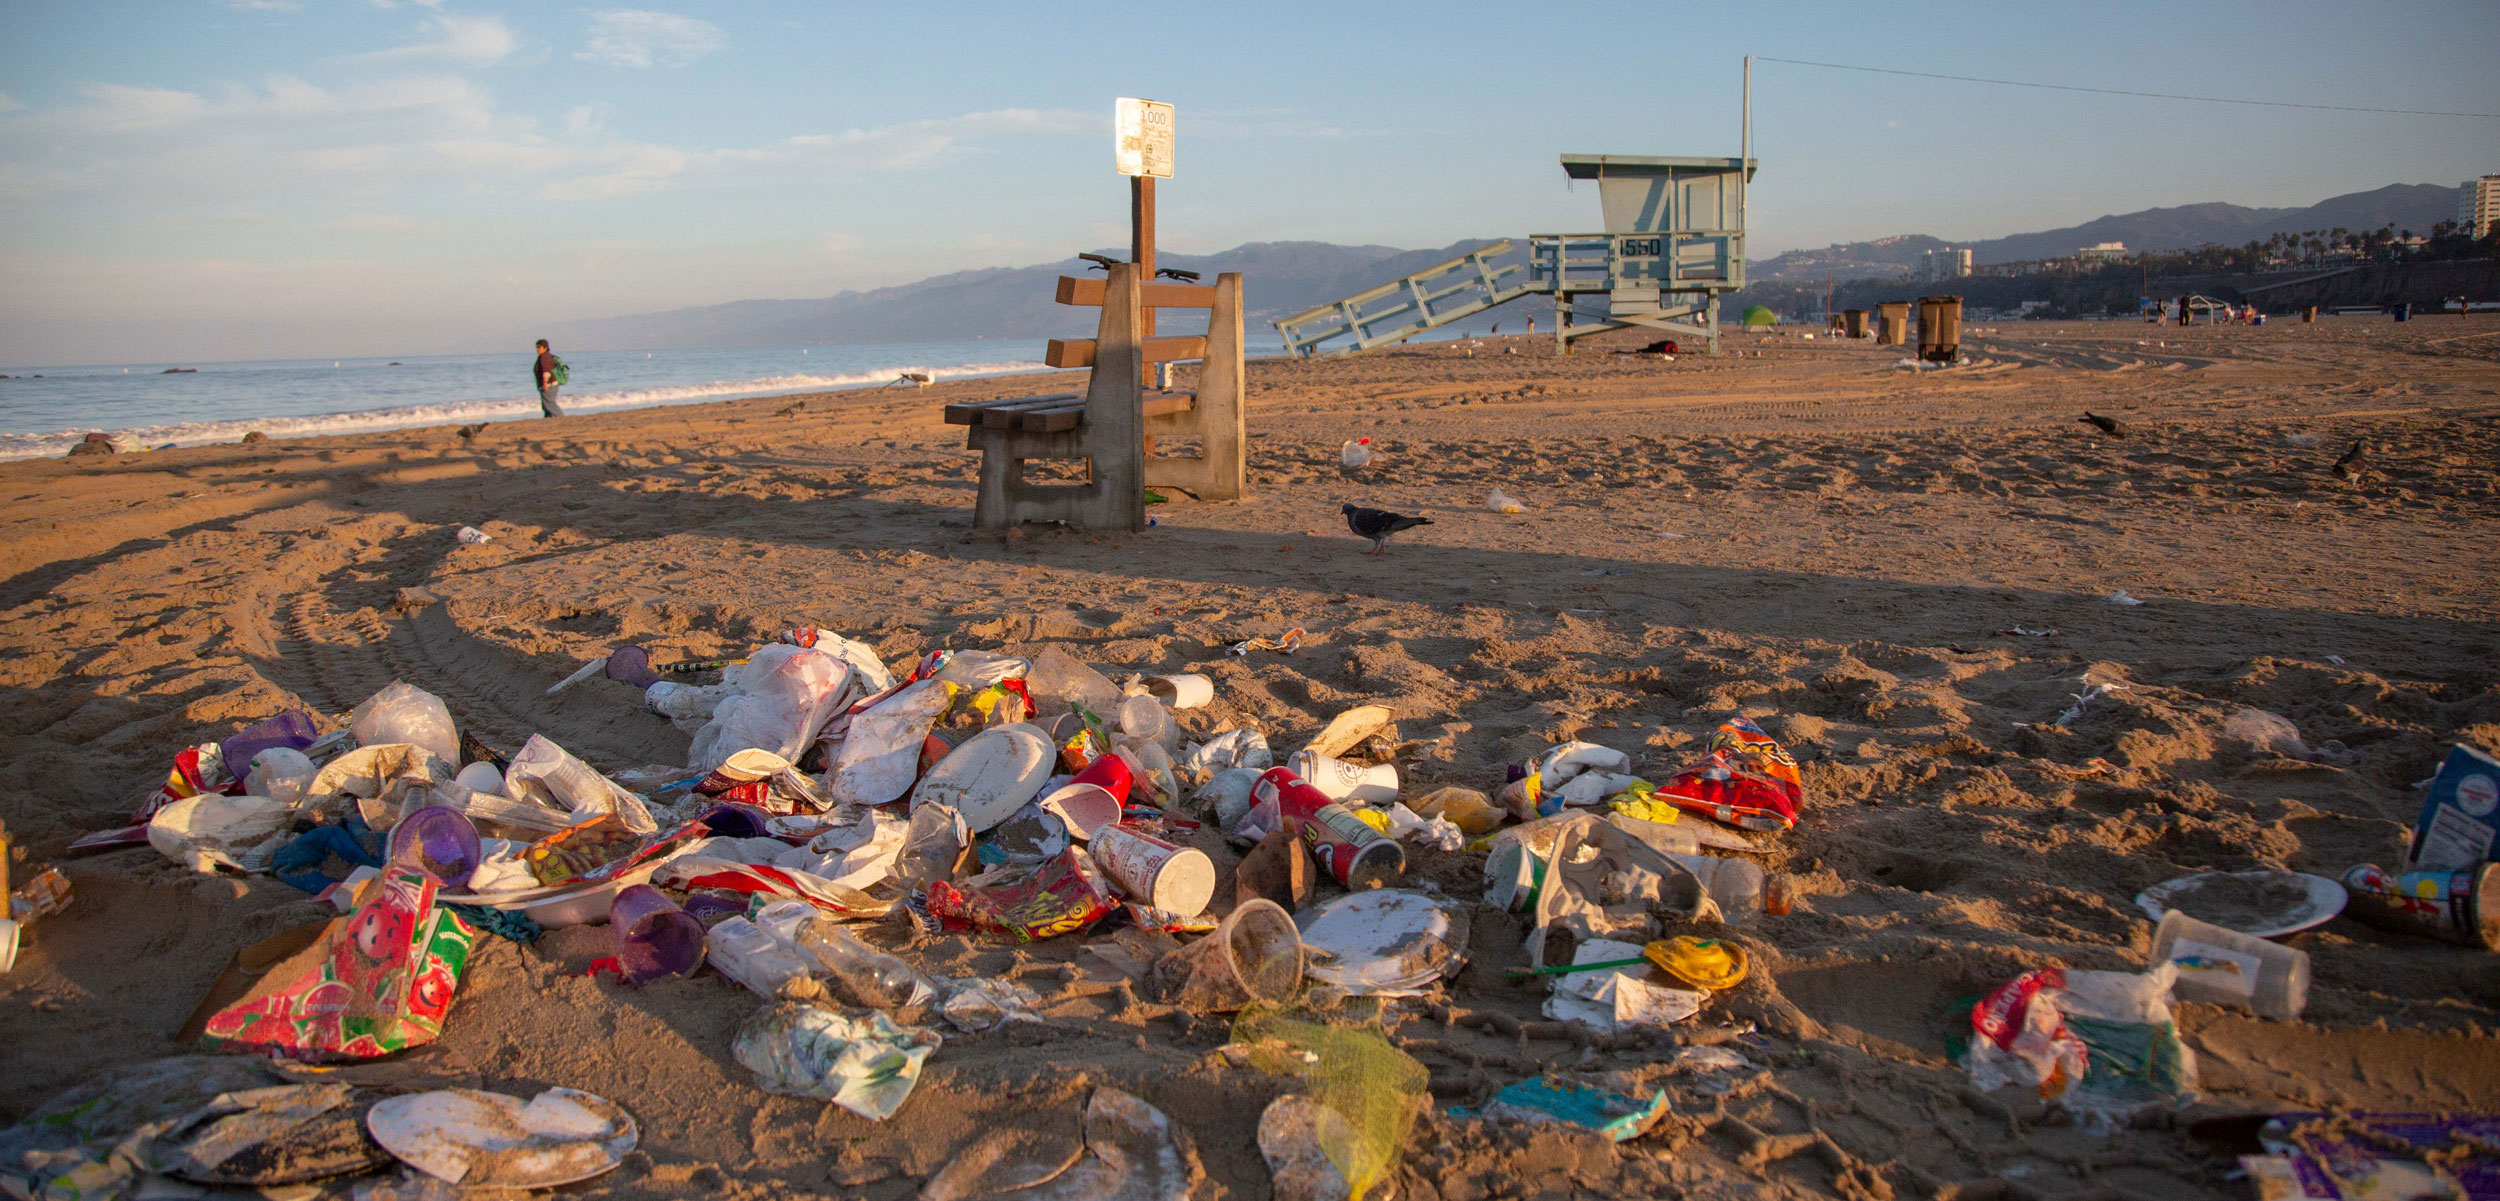 Piles of trash at sunrise on Santa Monica Beach, California